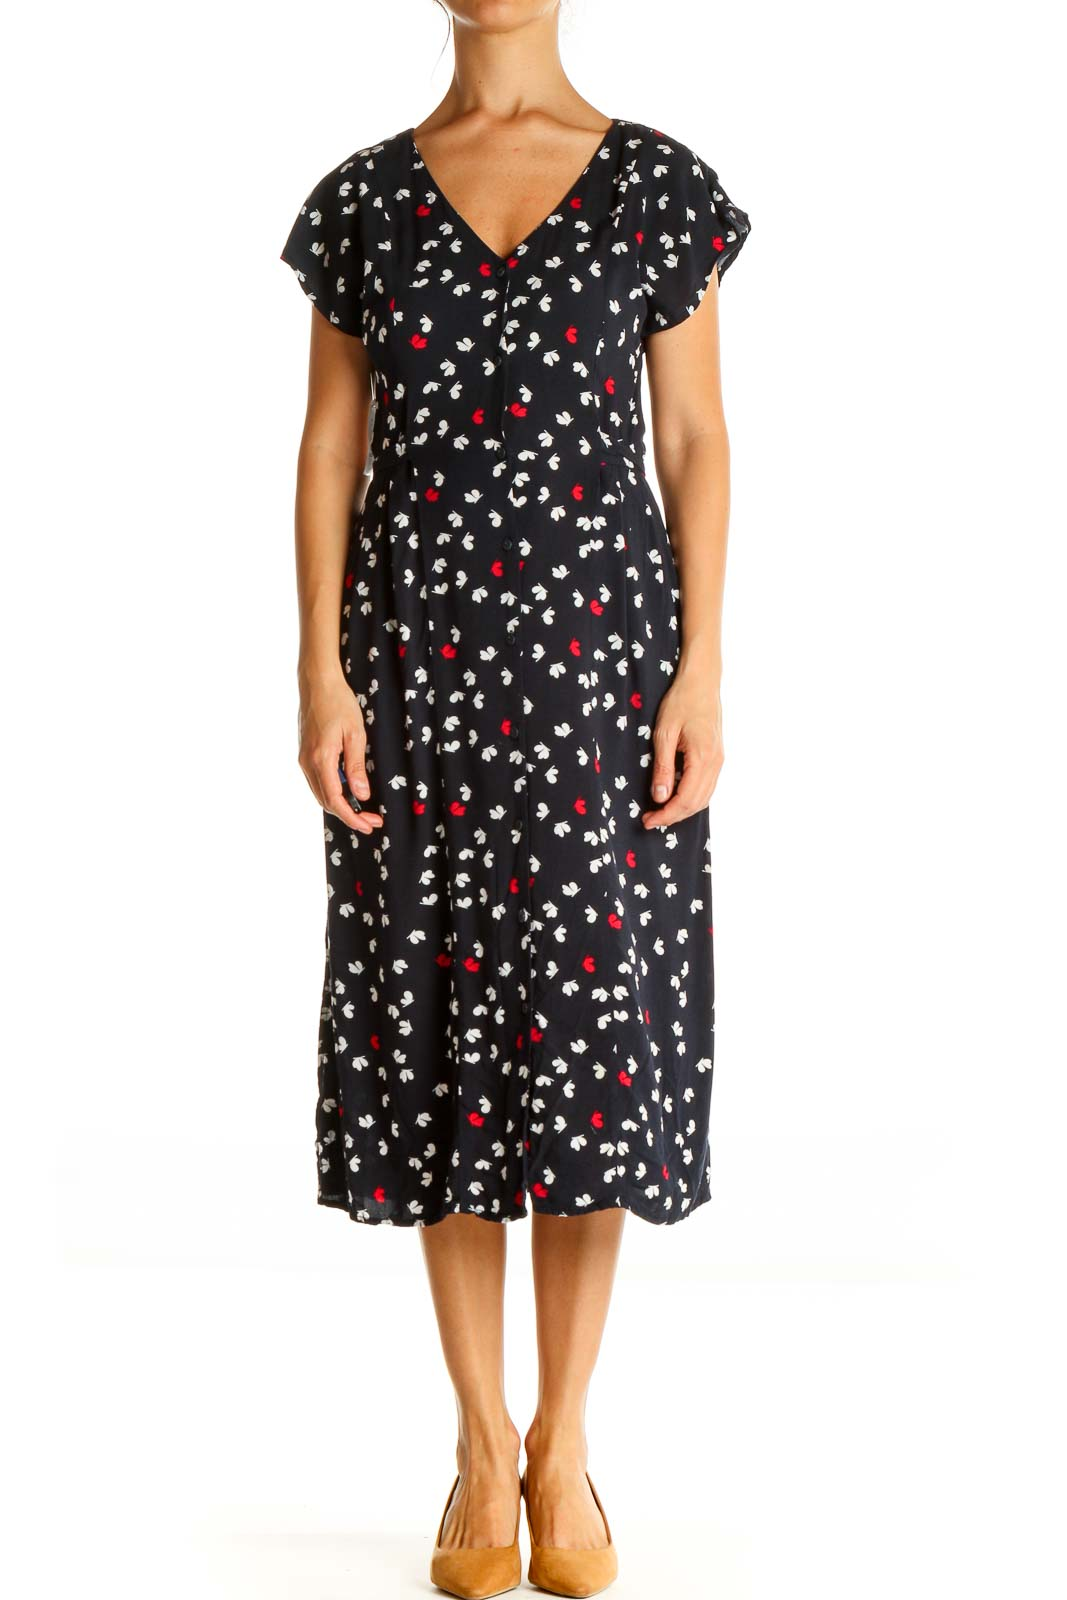 Blue Floral Print Classic Fit & Flare Dress Front